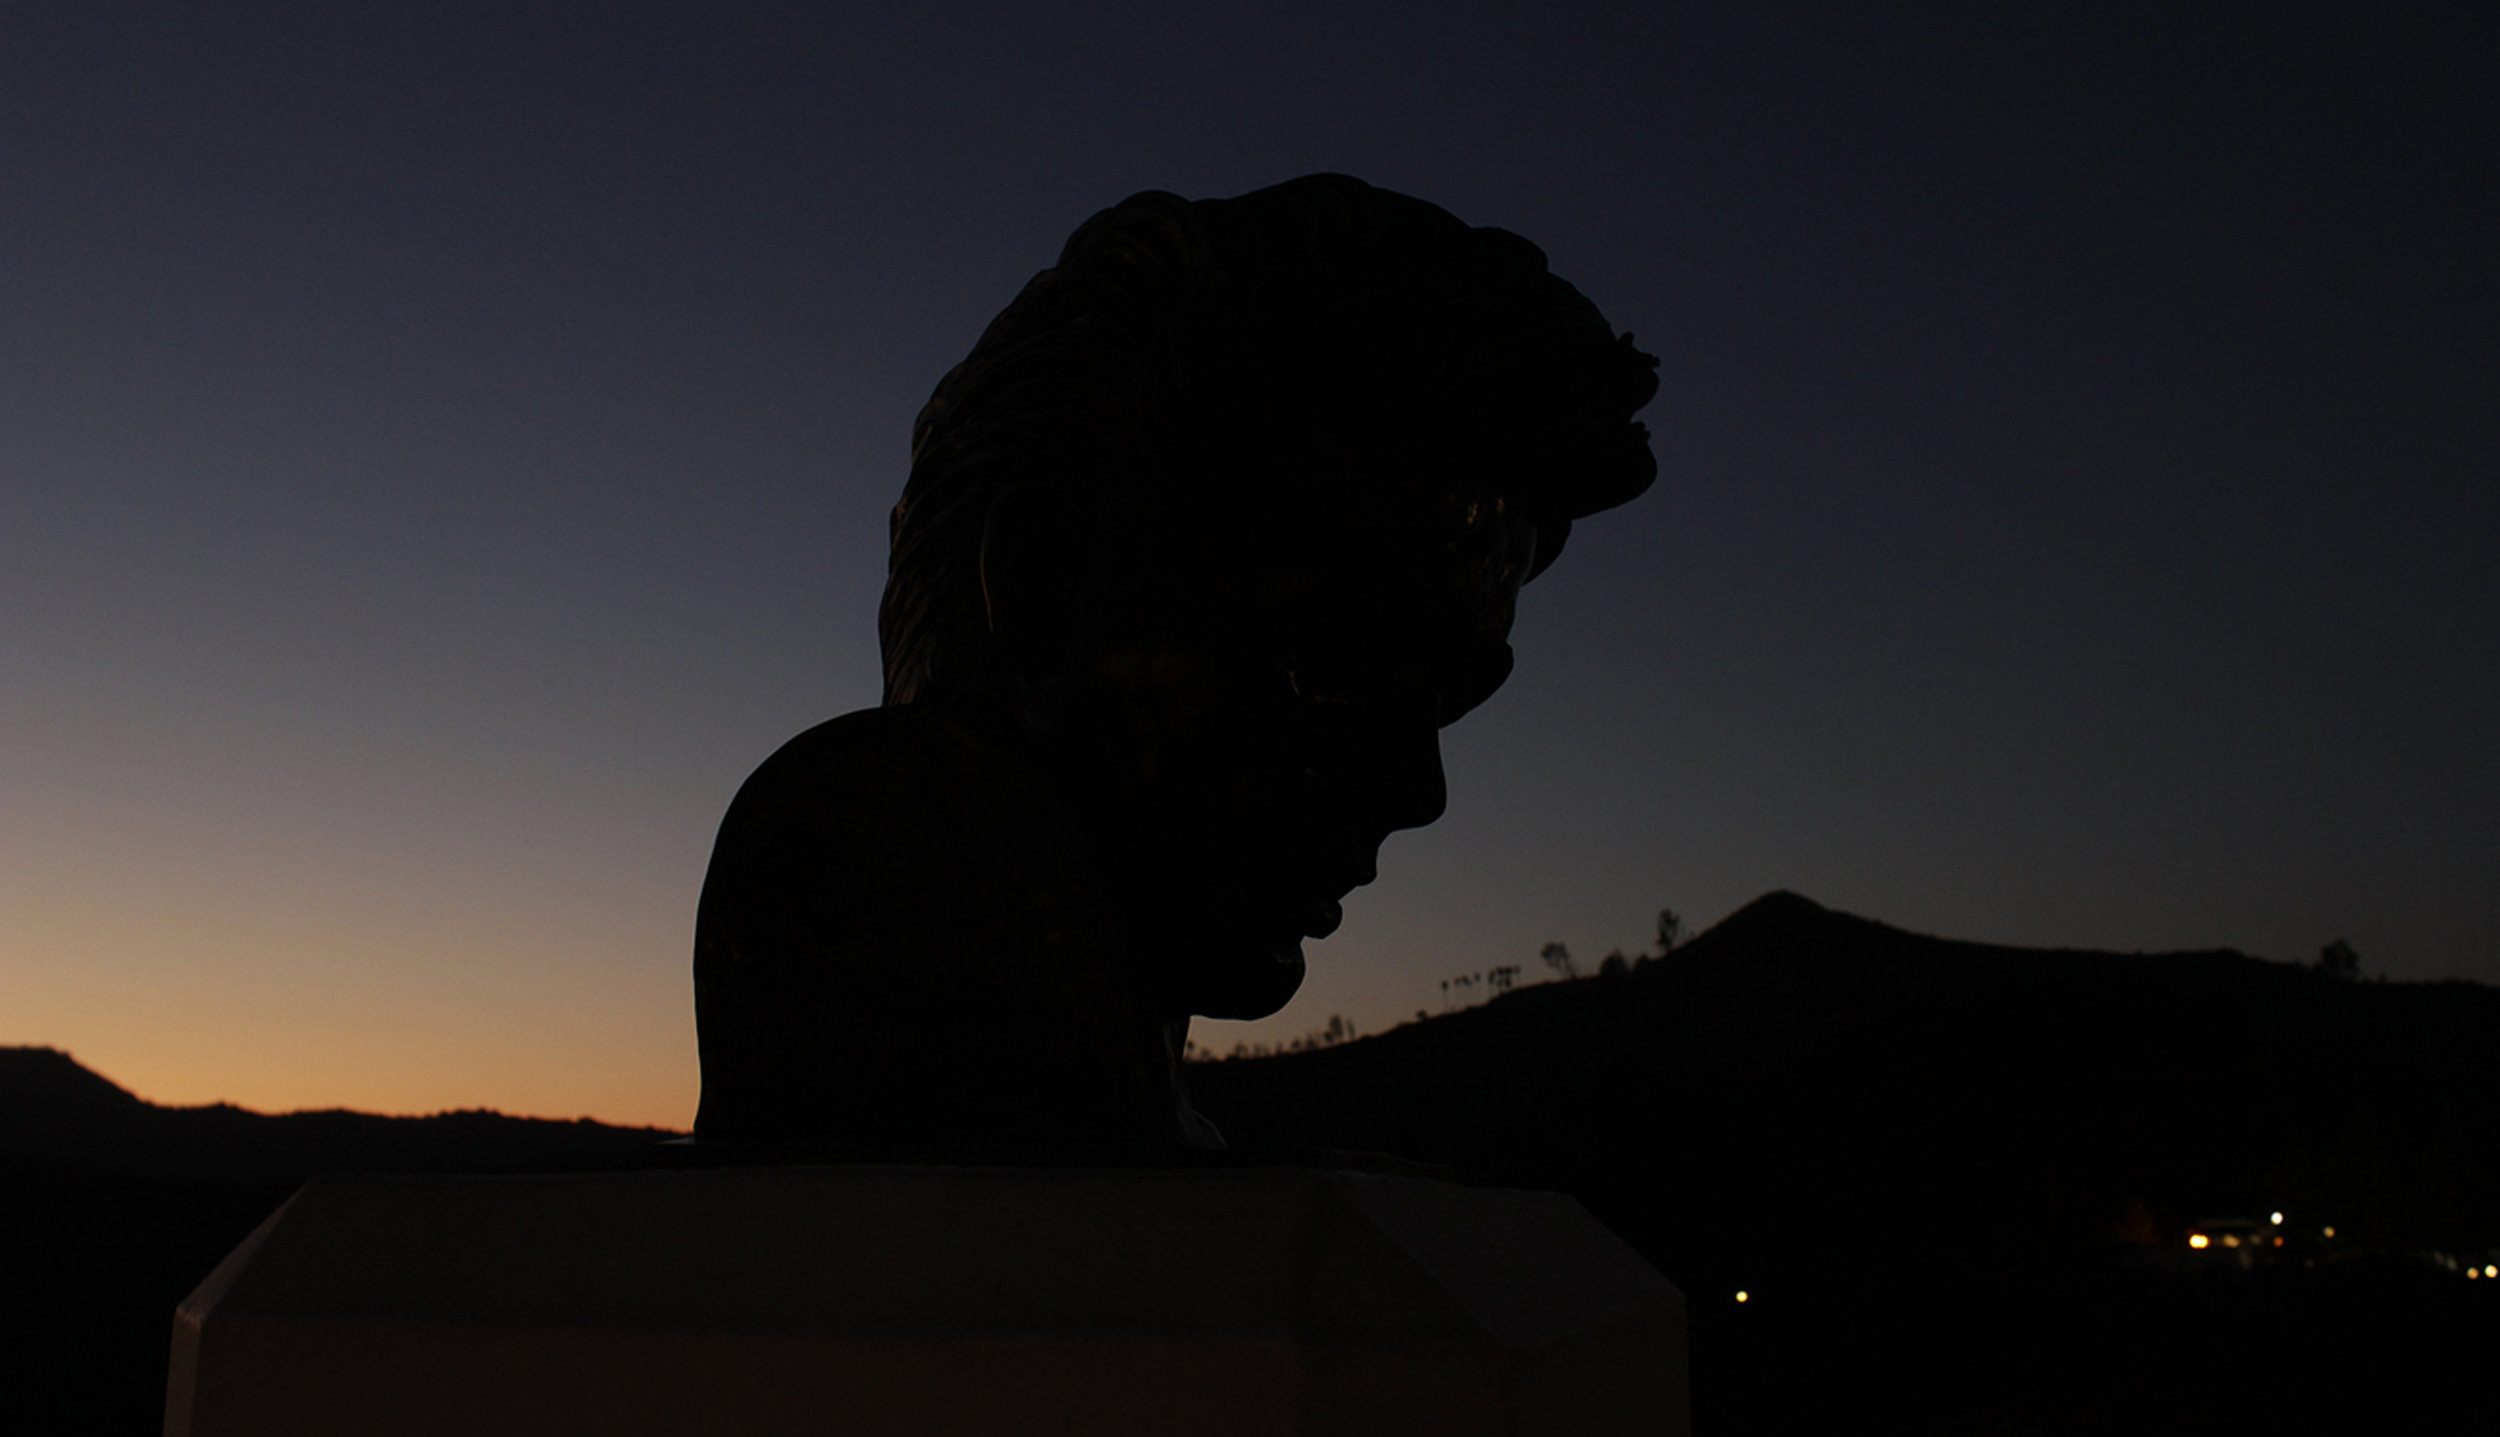 Bust of James Dean outside of the Griffith Observatory, the shooting location of famous scenes from the film Rebel Without a Cause.